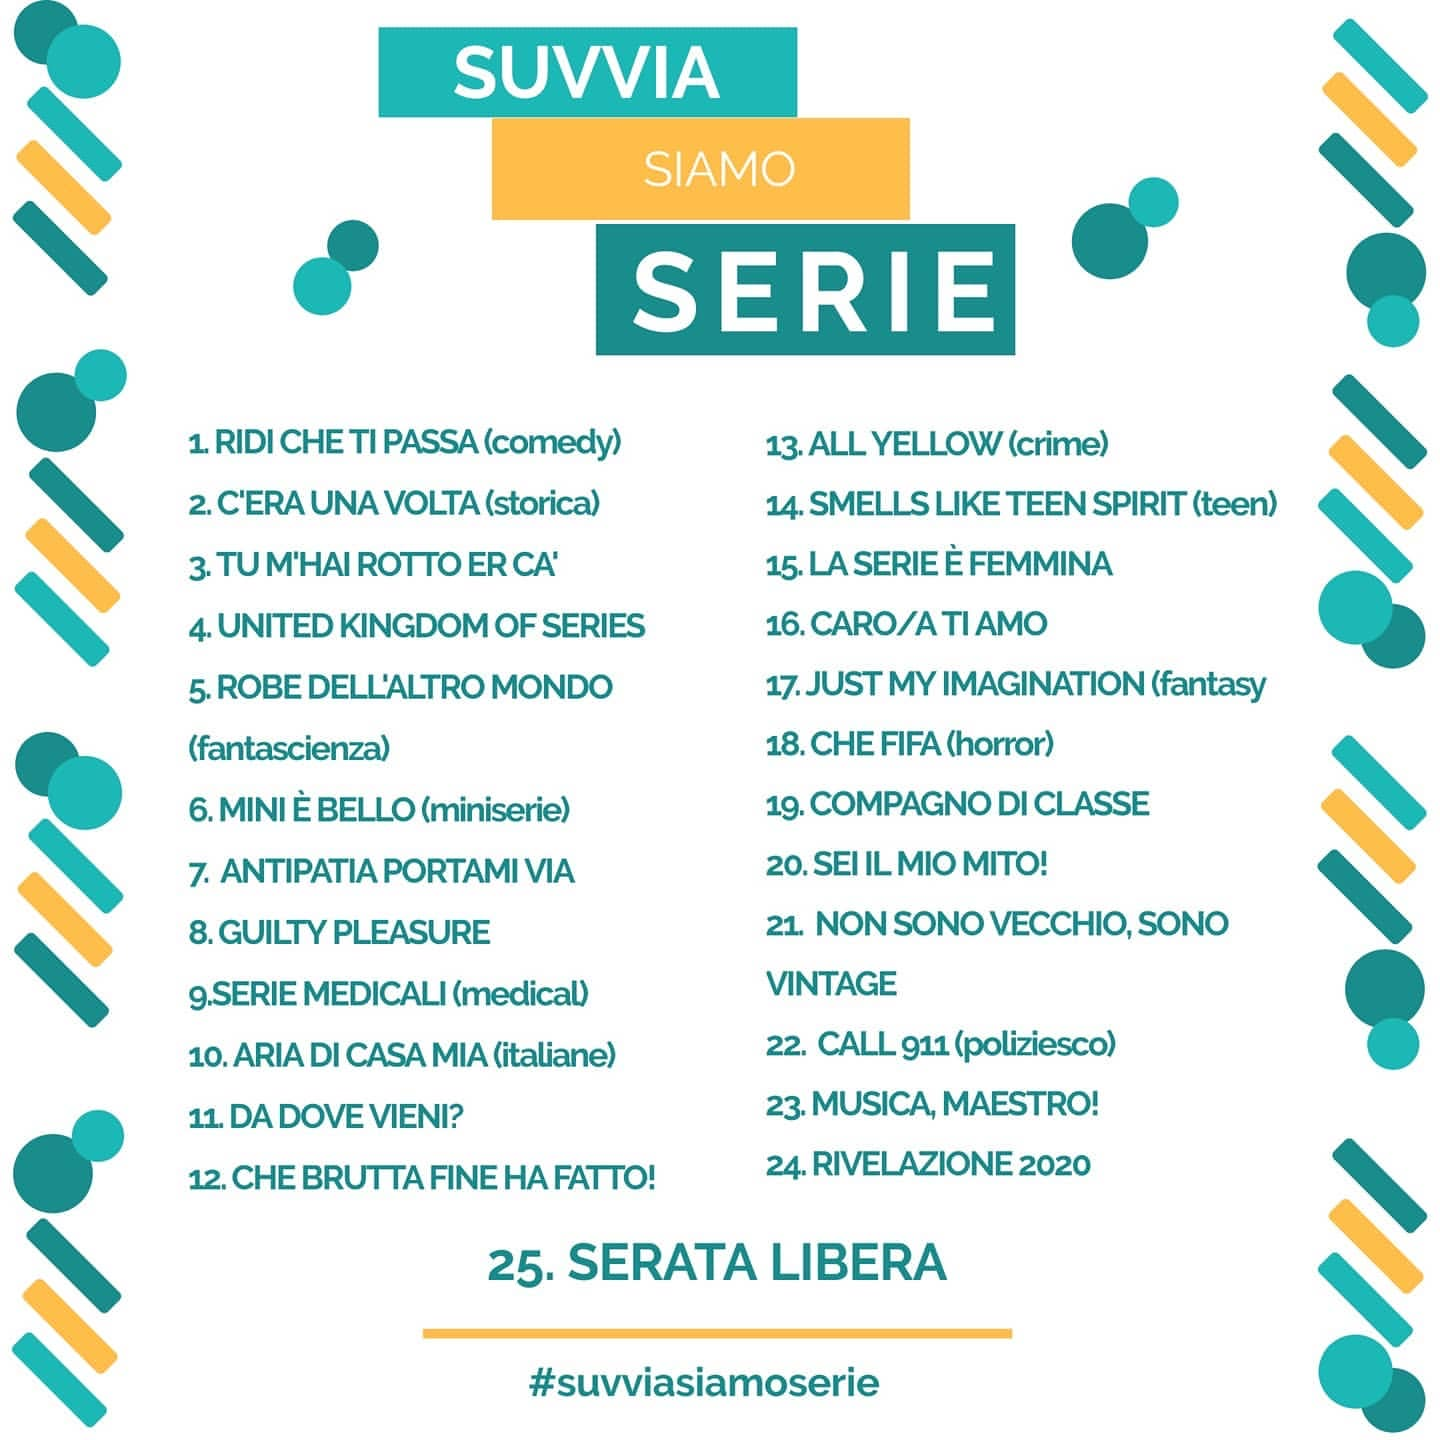 suvviasiamoserie challenge